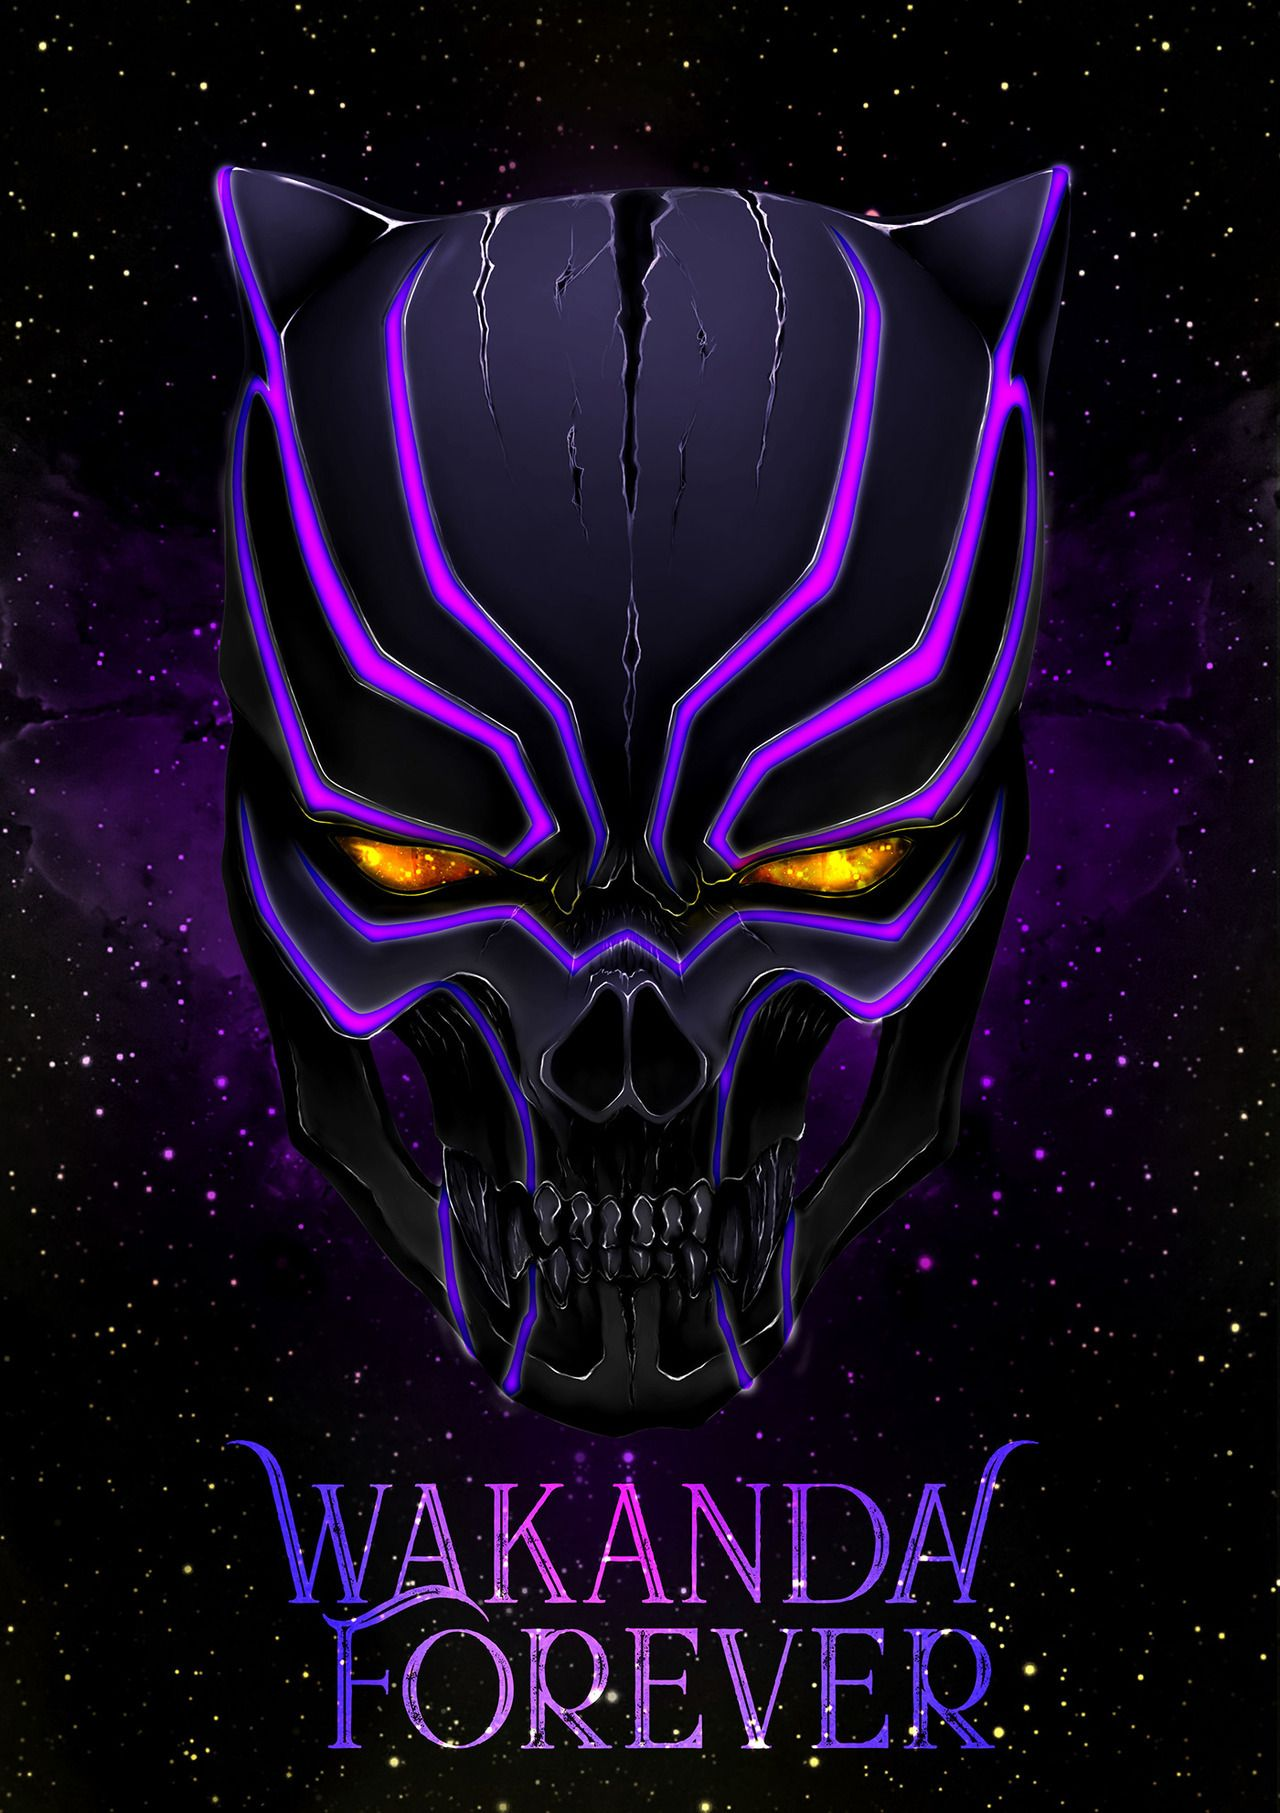 Wakanda Forever Art By Ravin Wong Black Panther Best Iphone Wallpapers Black Panther Art